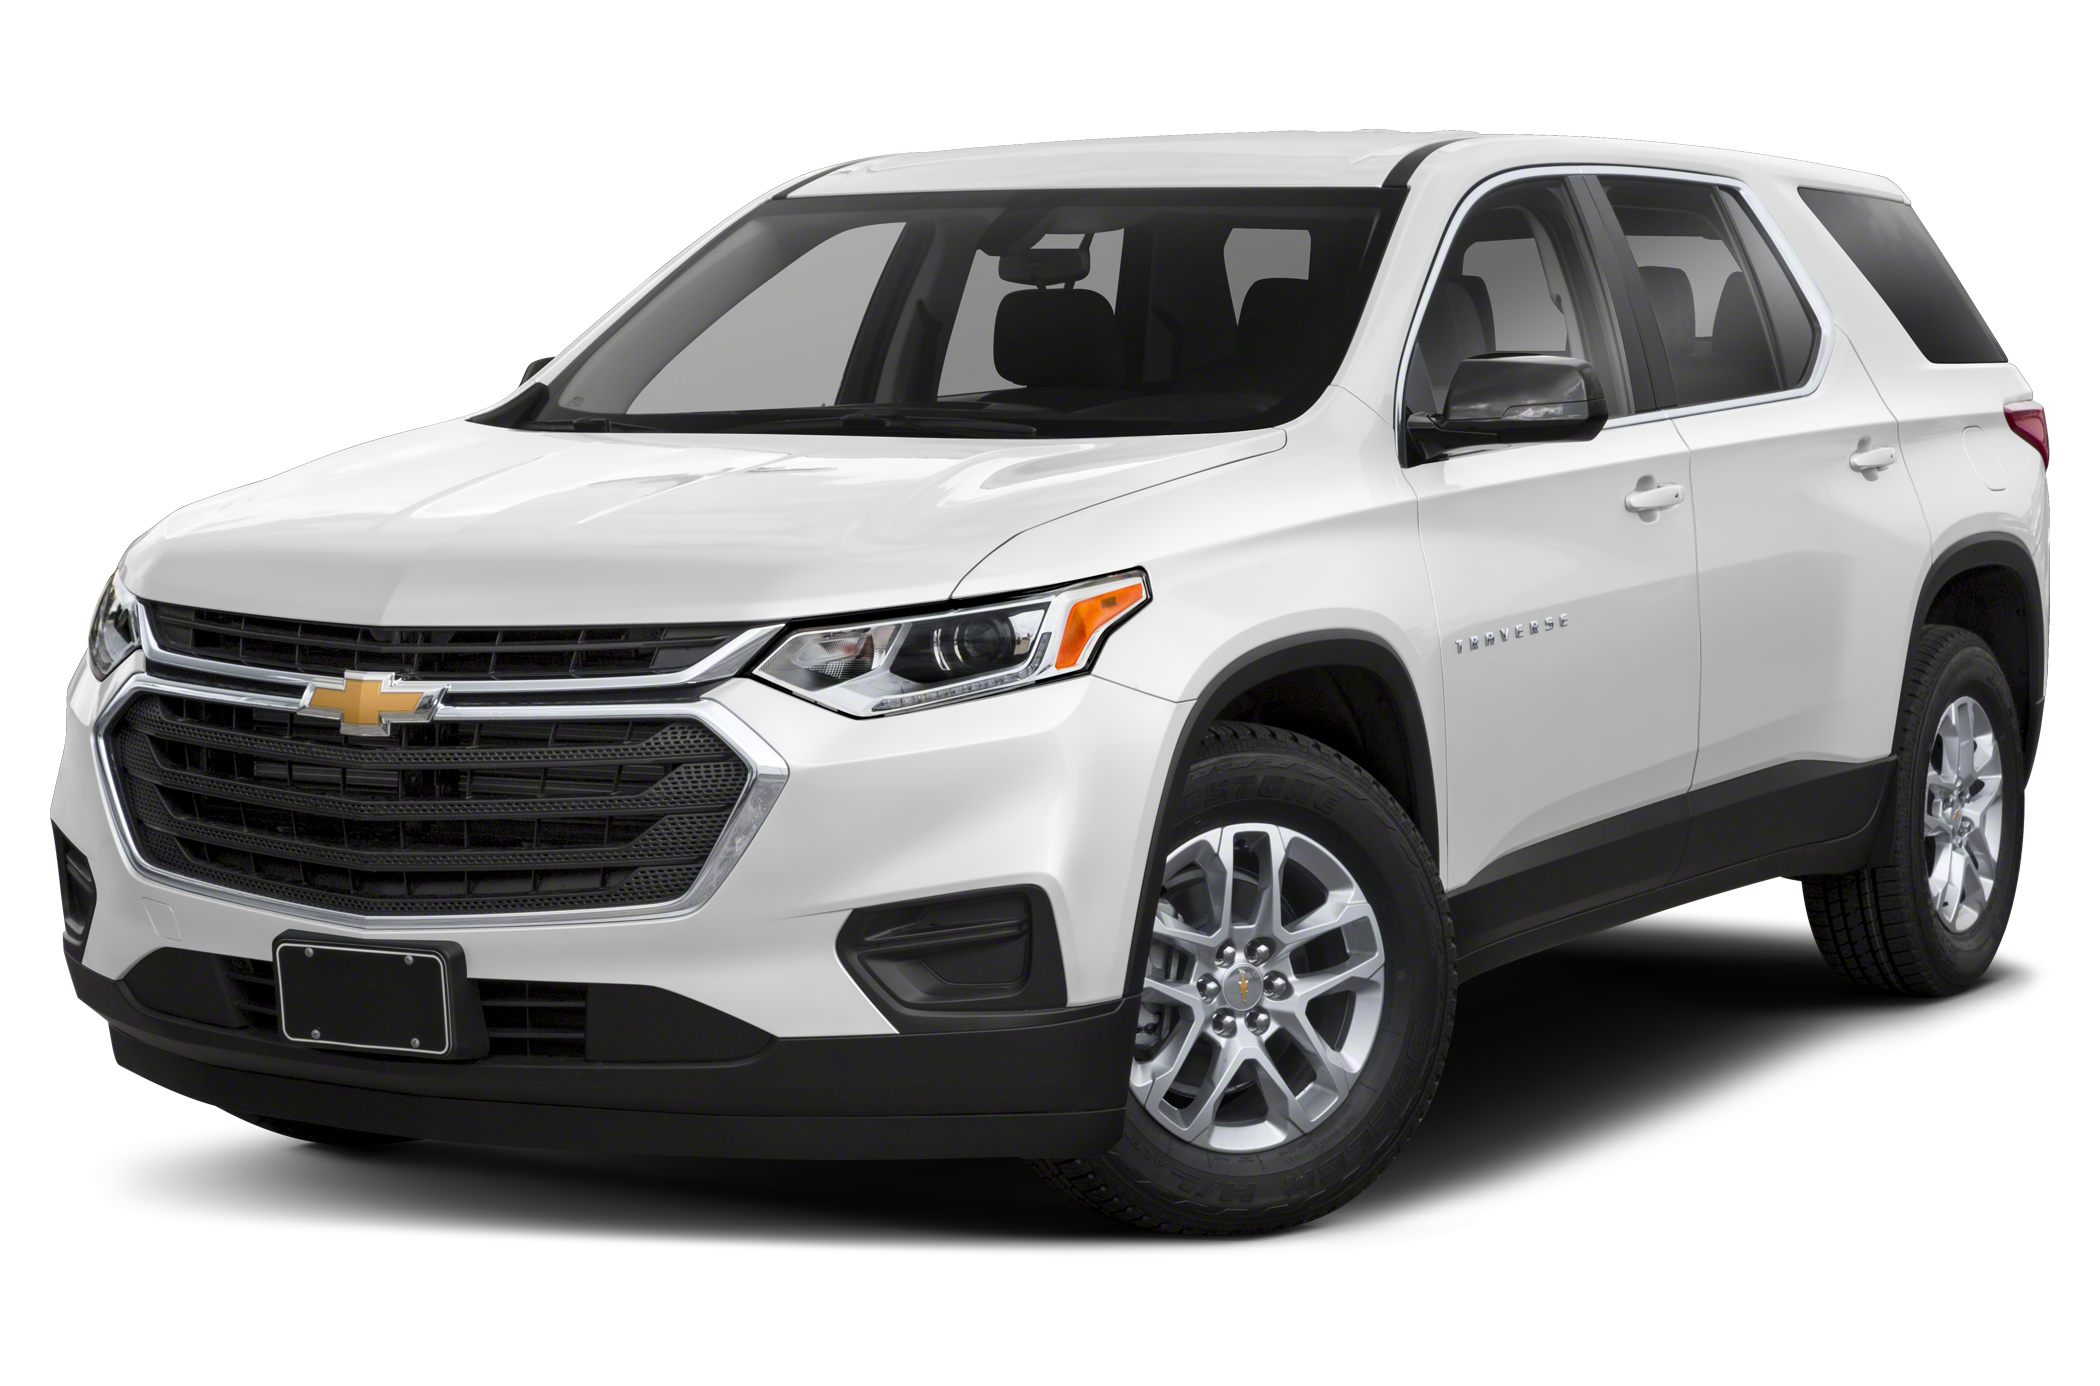 2019 Chevrolet Traverse Owner Reviews And Ratings